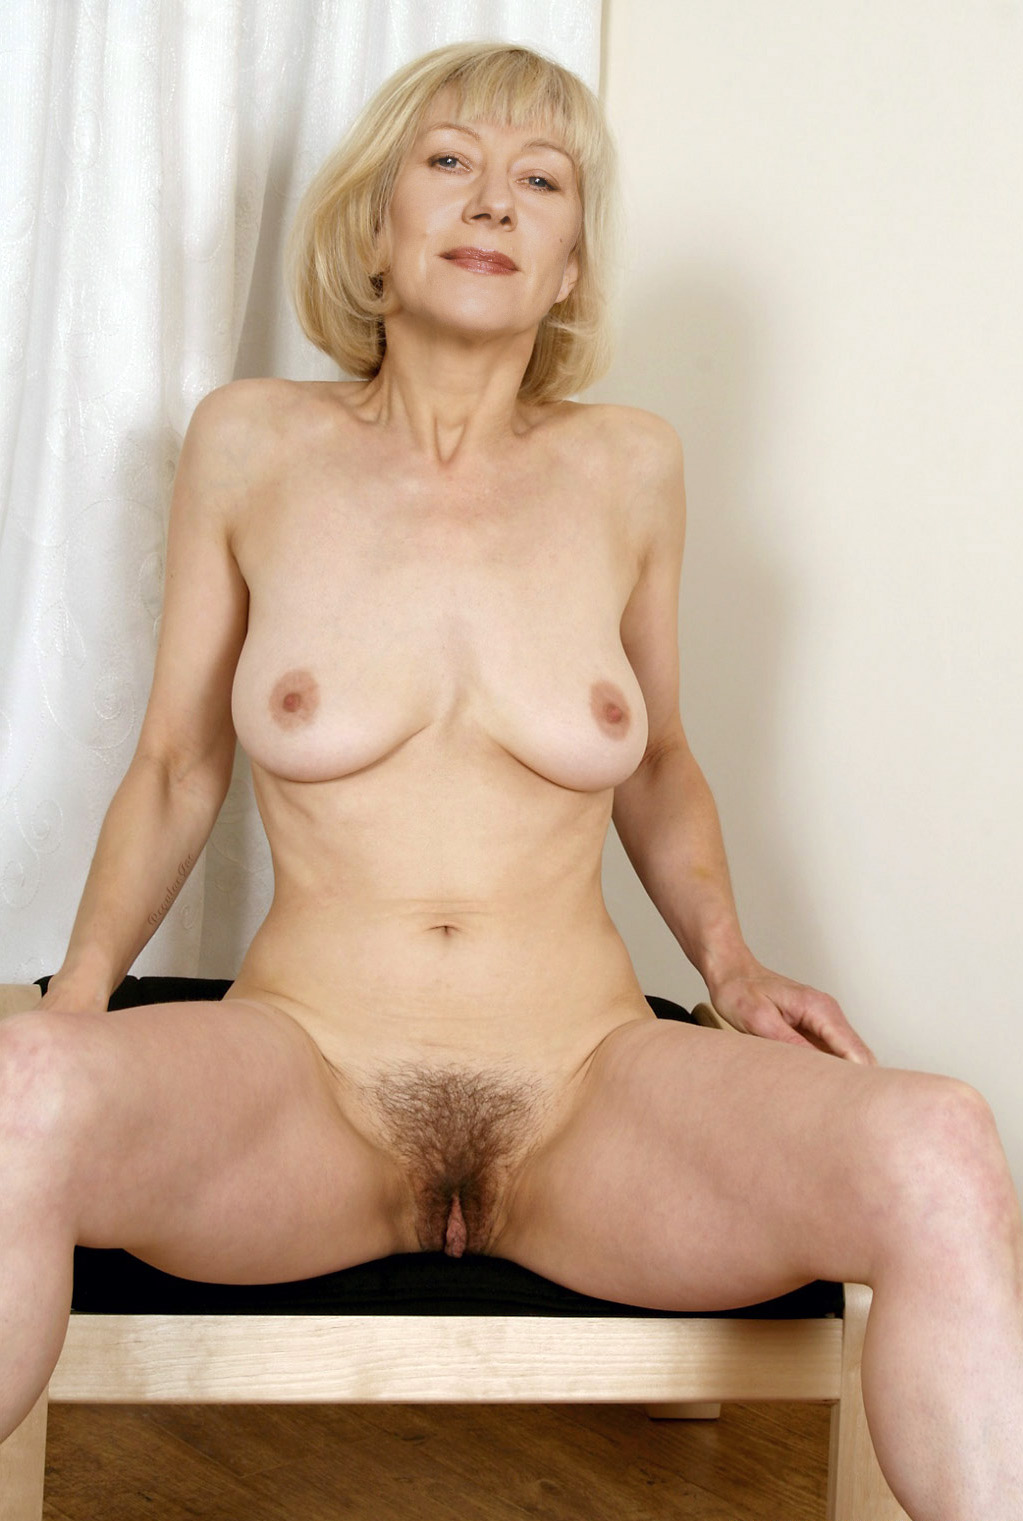 Helen mirren exposing her big tits her nice ass and her pussy in nude picture caps